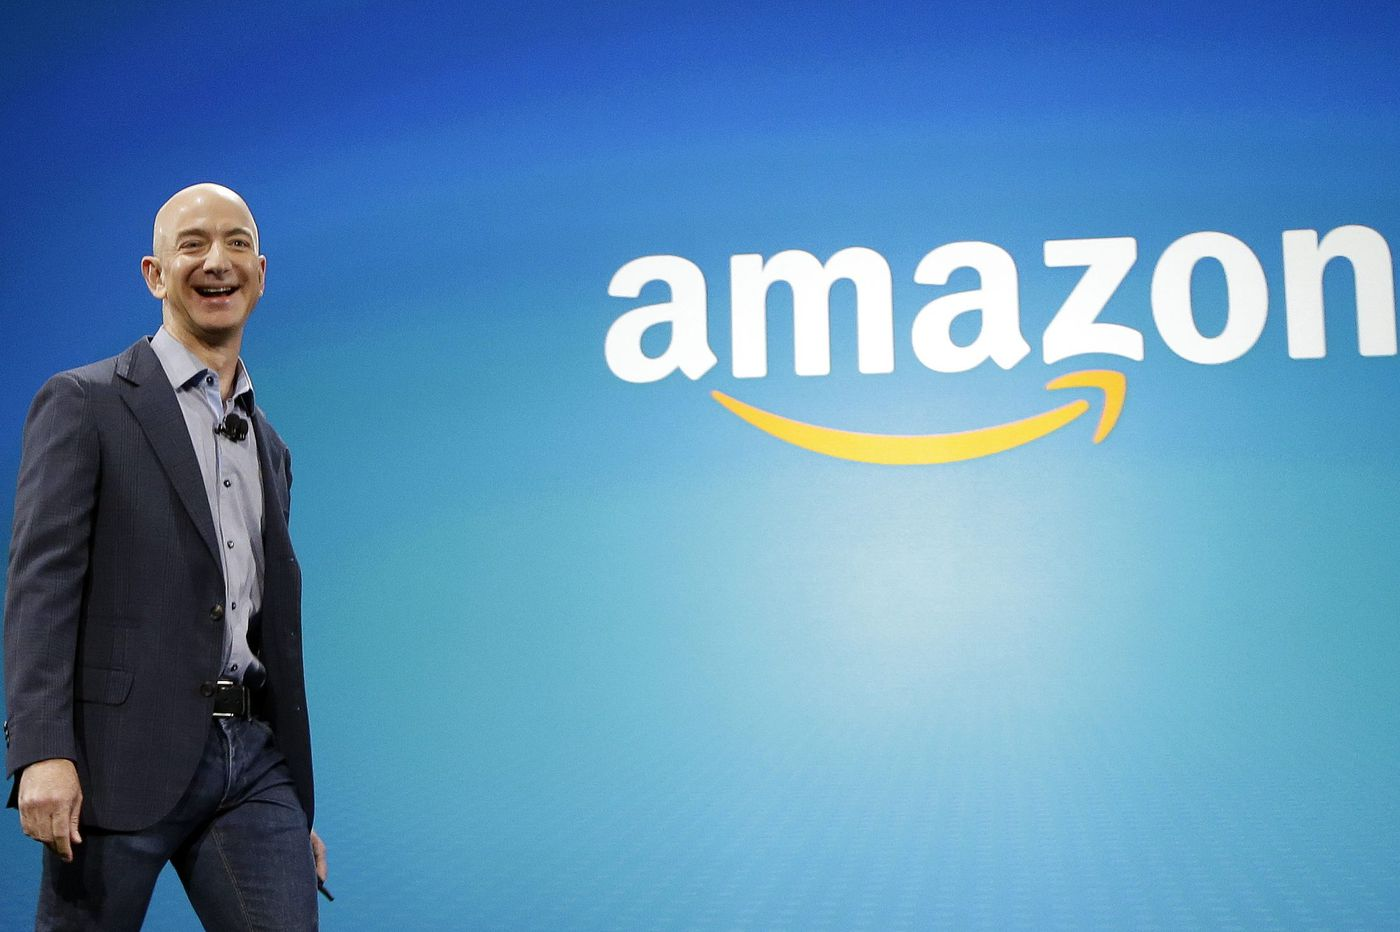 Jeff Bezos is what democracy needs right now   Opinion